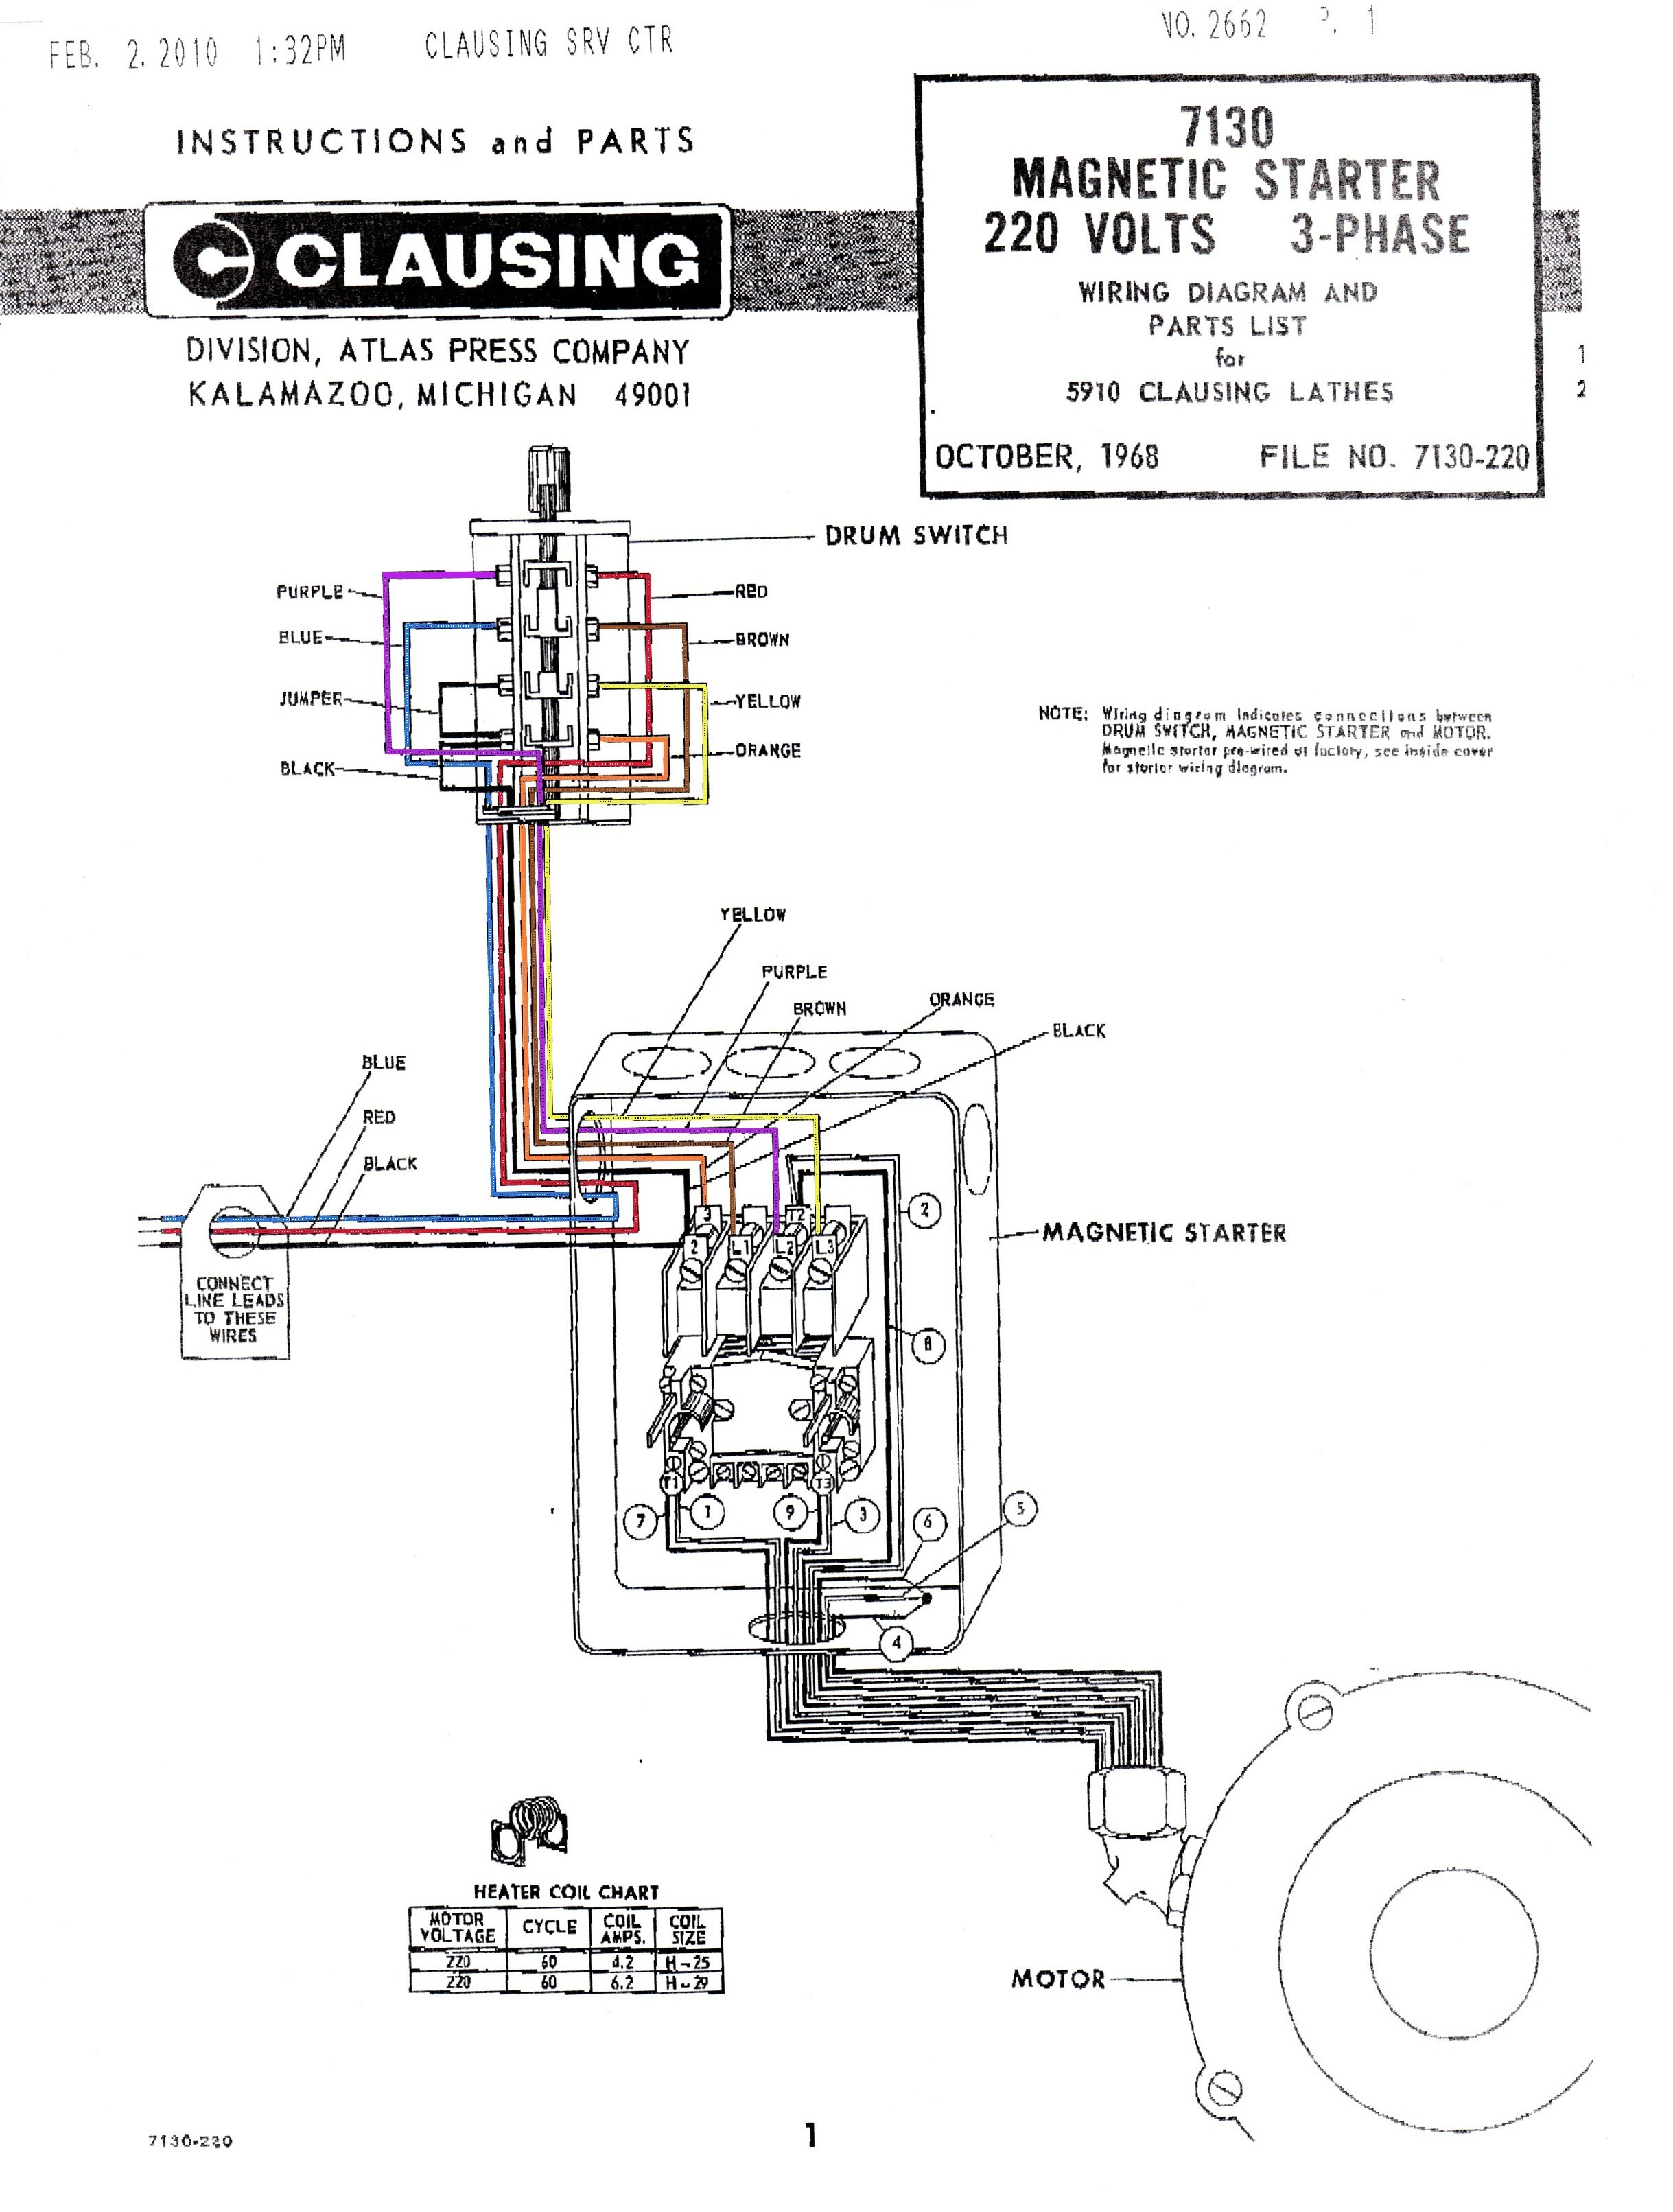 Single phase motor starter wiring diagram wiring diagram single motor wiring diagram of single phase related post cheapraybanclubmaster Image collections